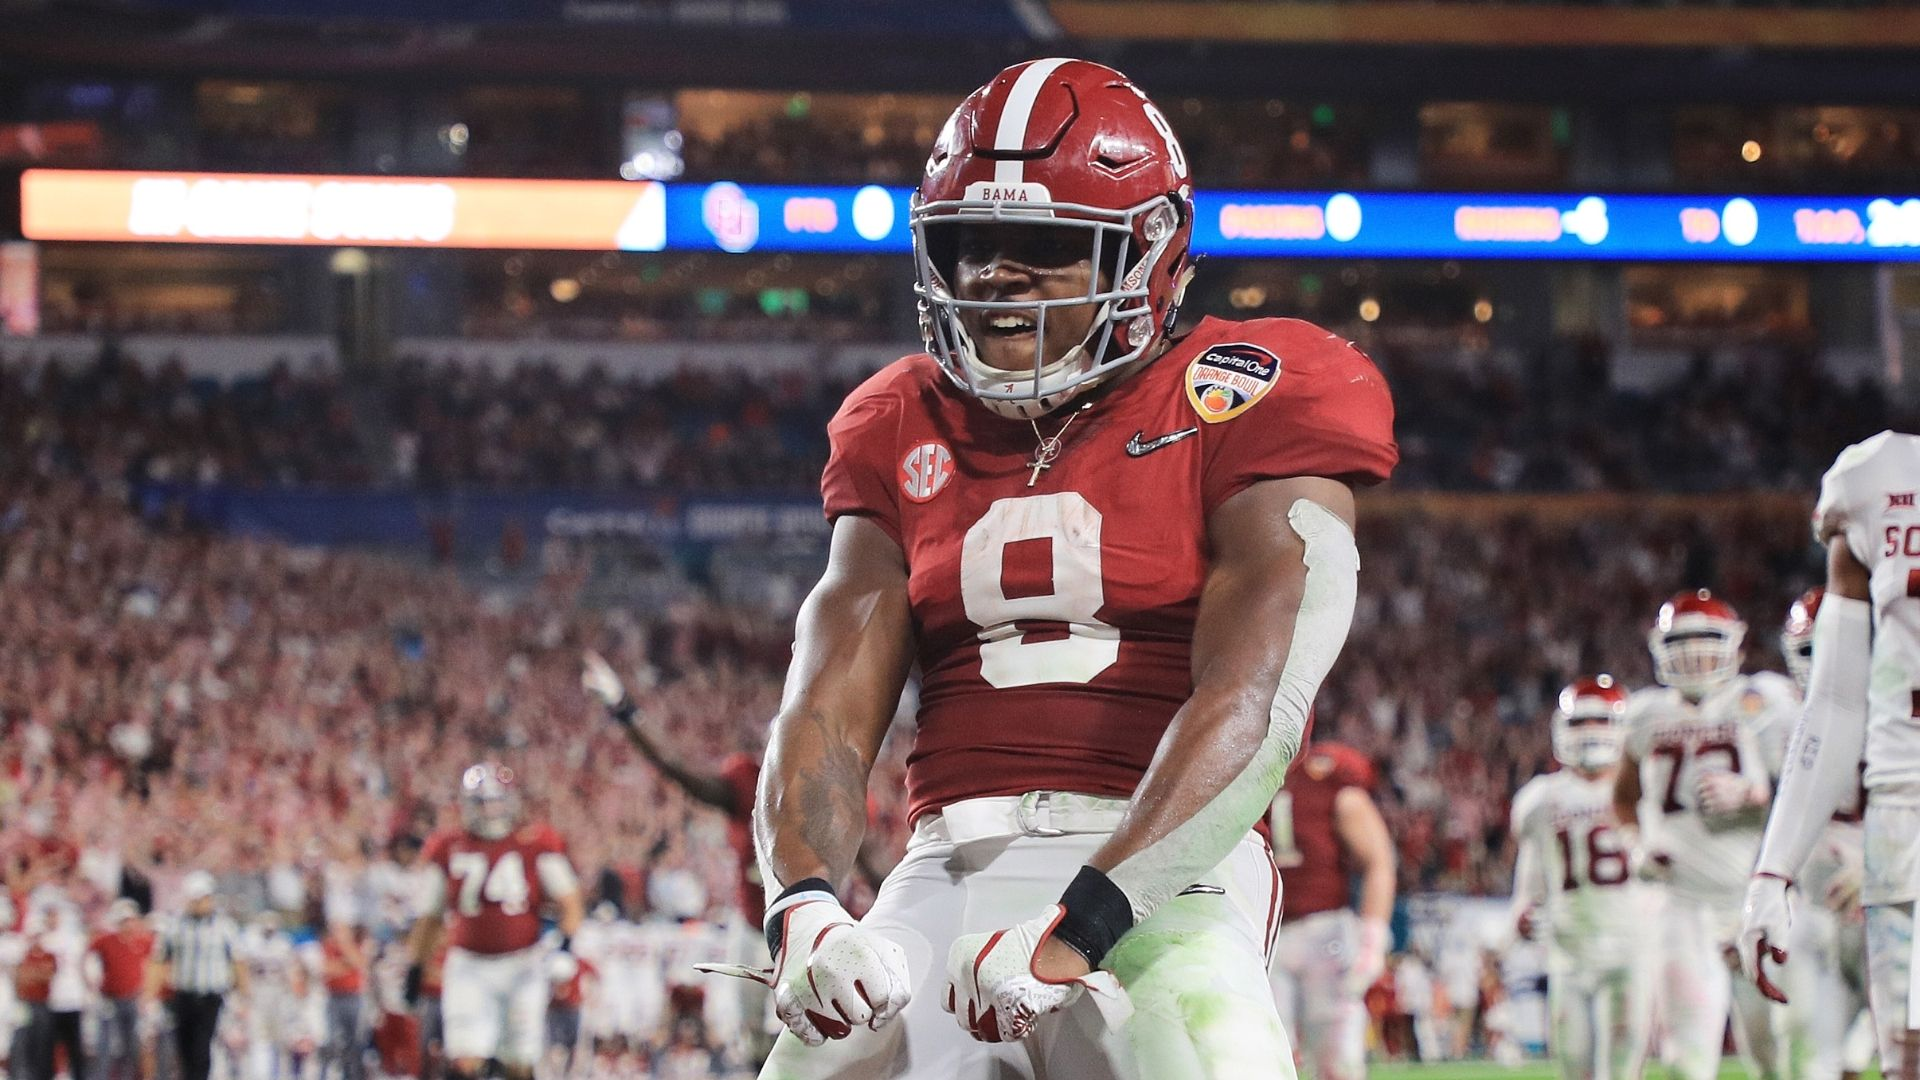 josh jacobs can simply run people over